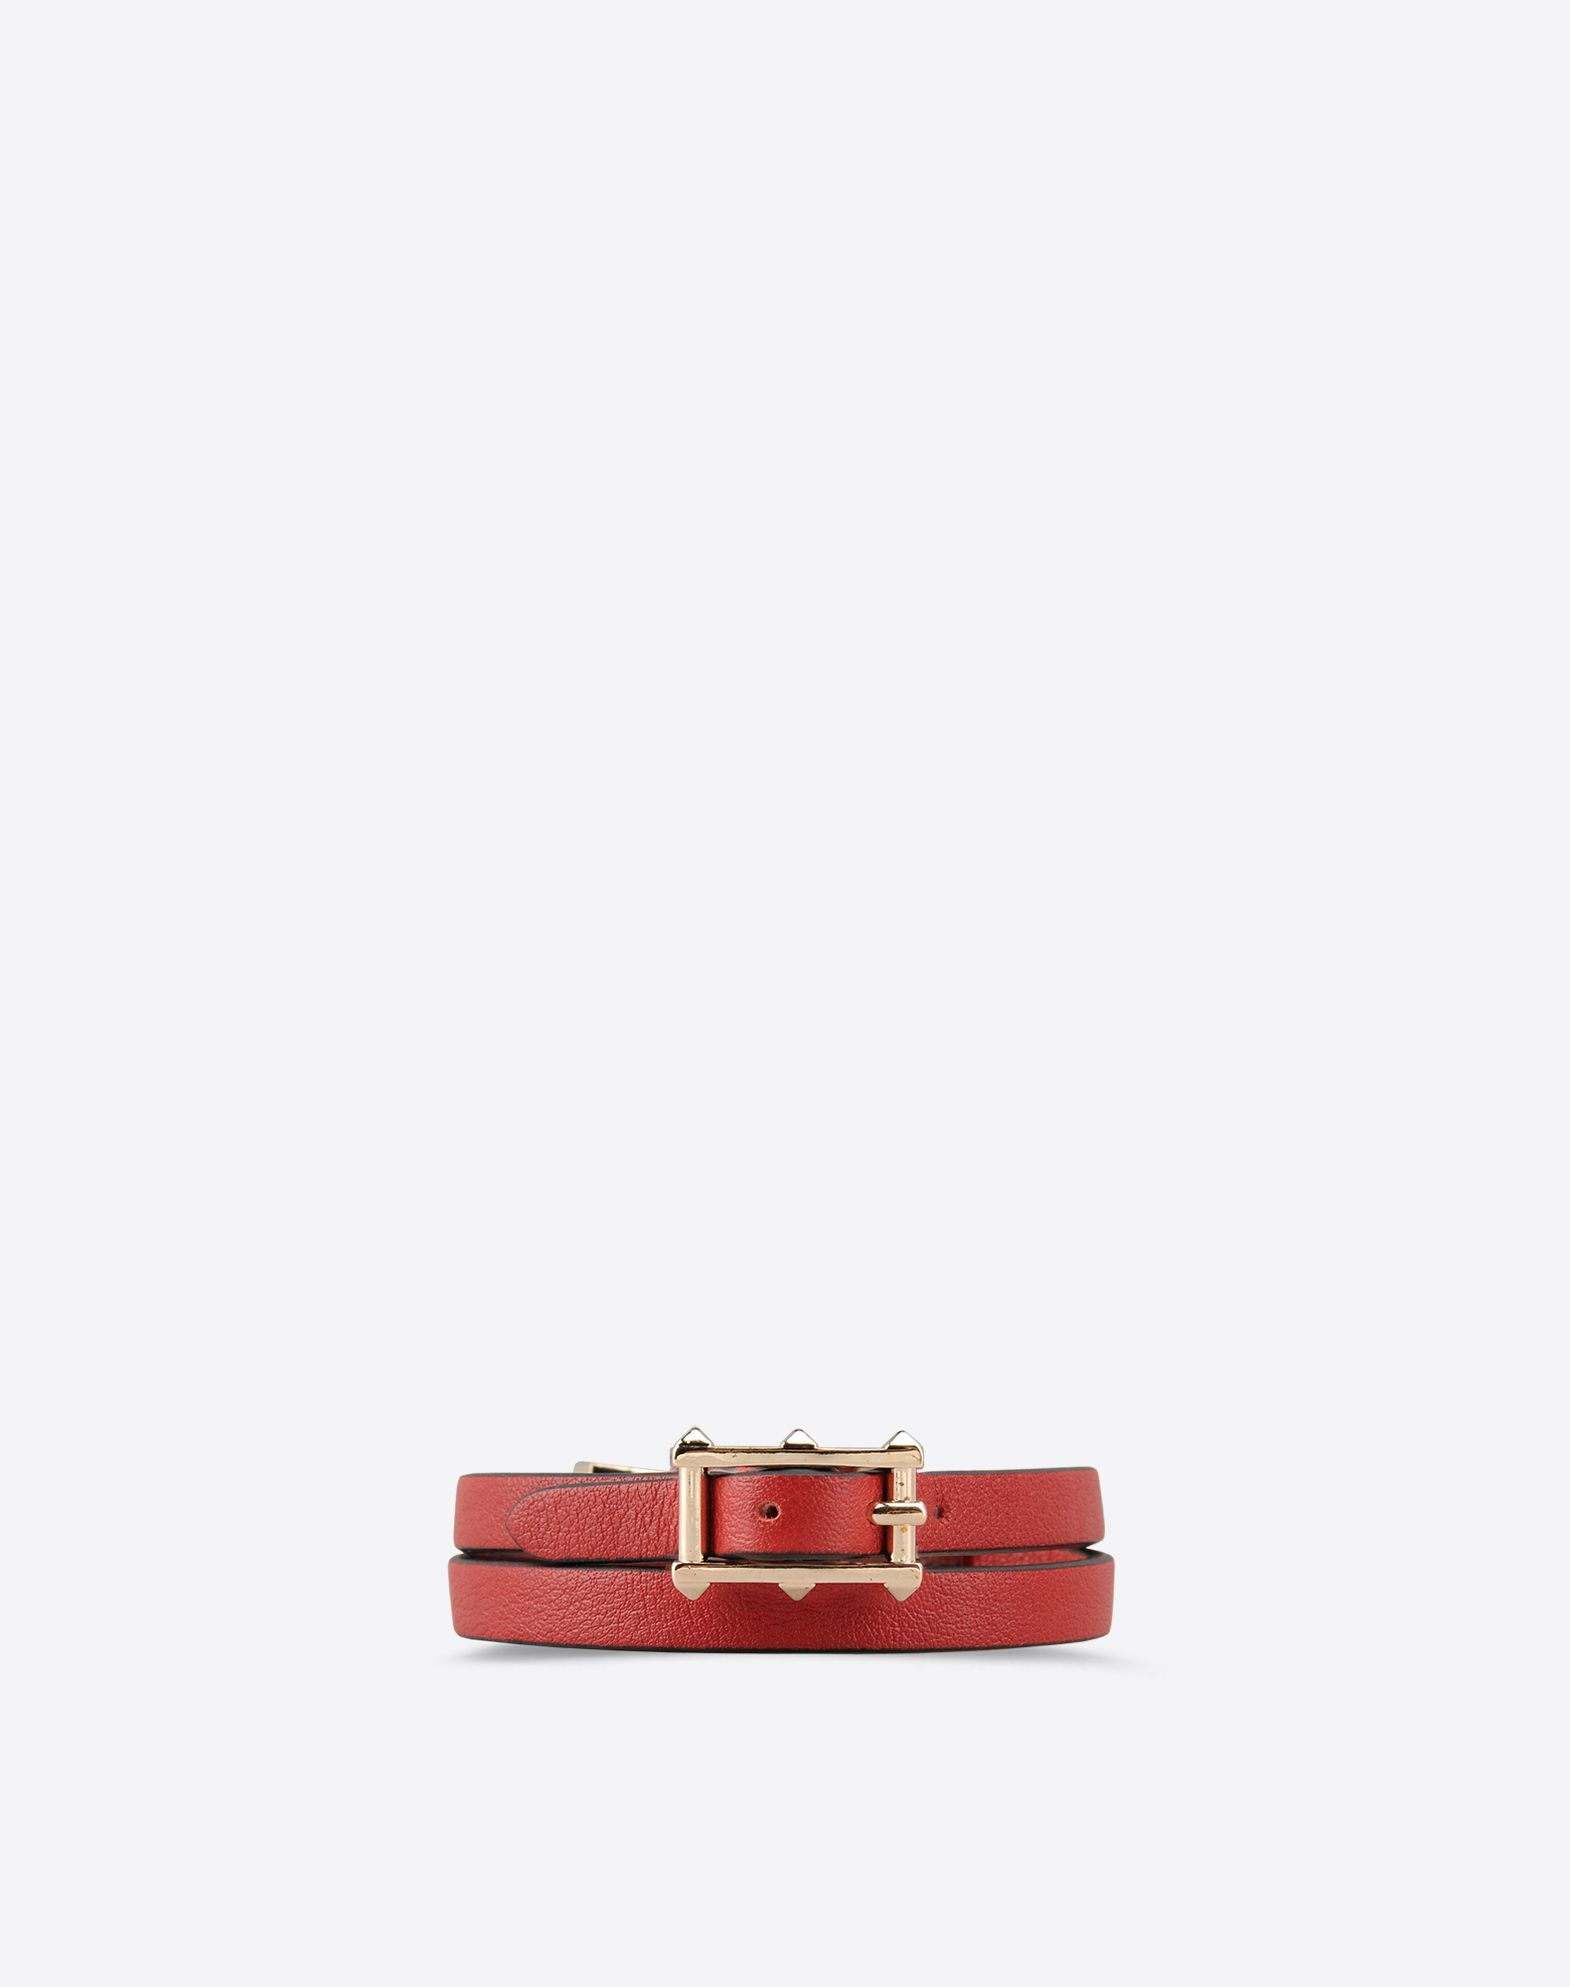 VALENTINO Metal Applications Solid color Leather lining Metallic buckle closure  46354075da